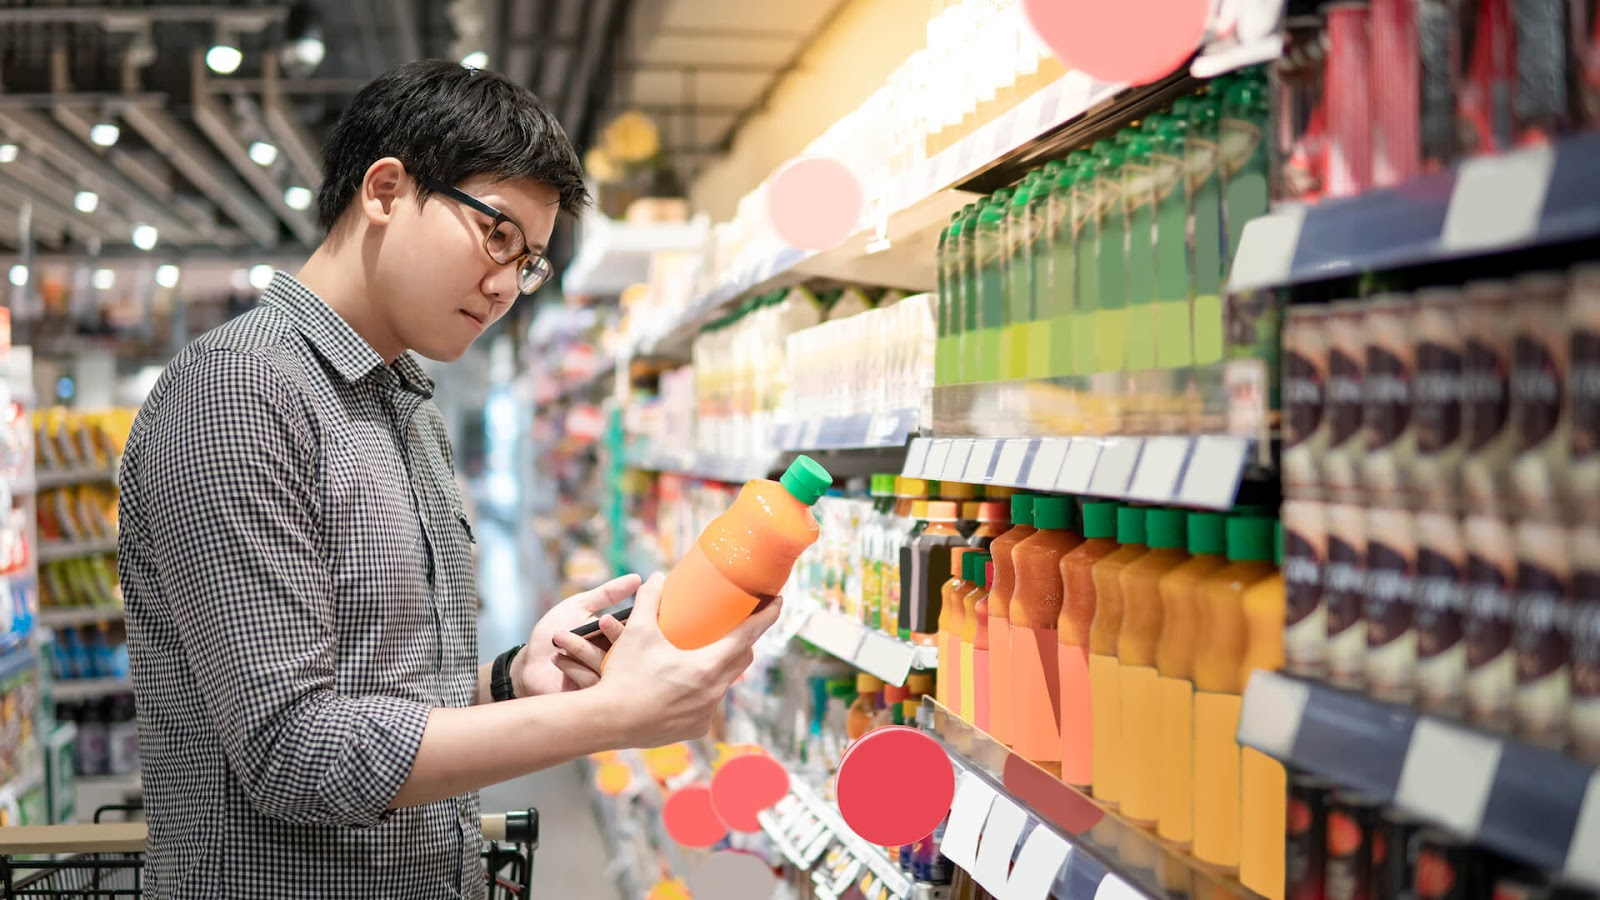 Man looking at the nutrition label on a juice bottle